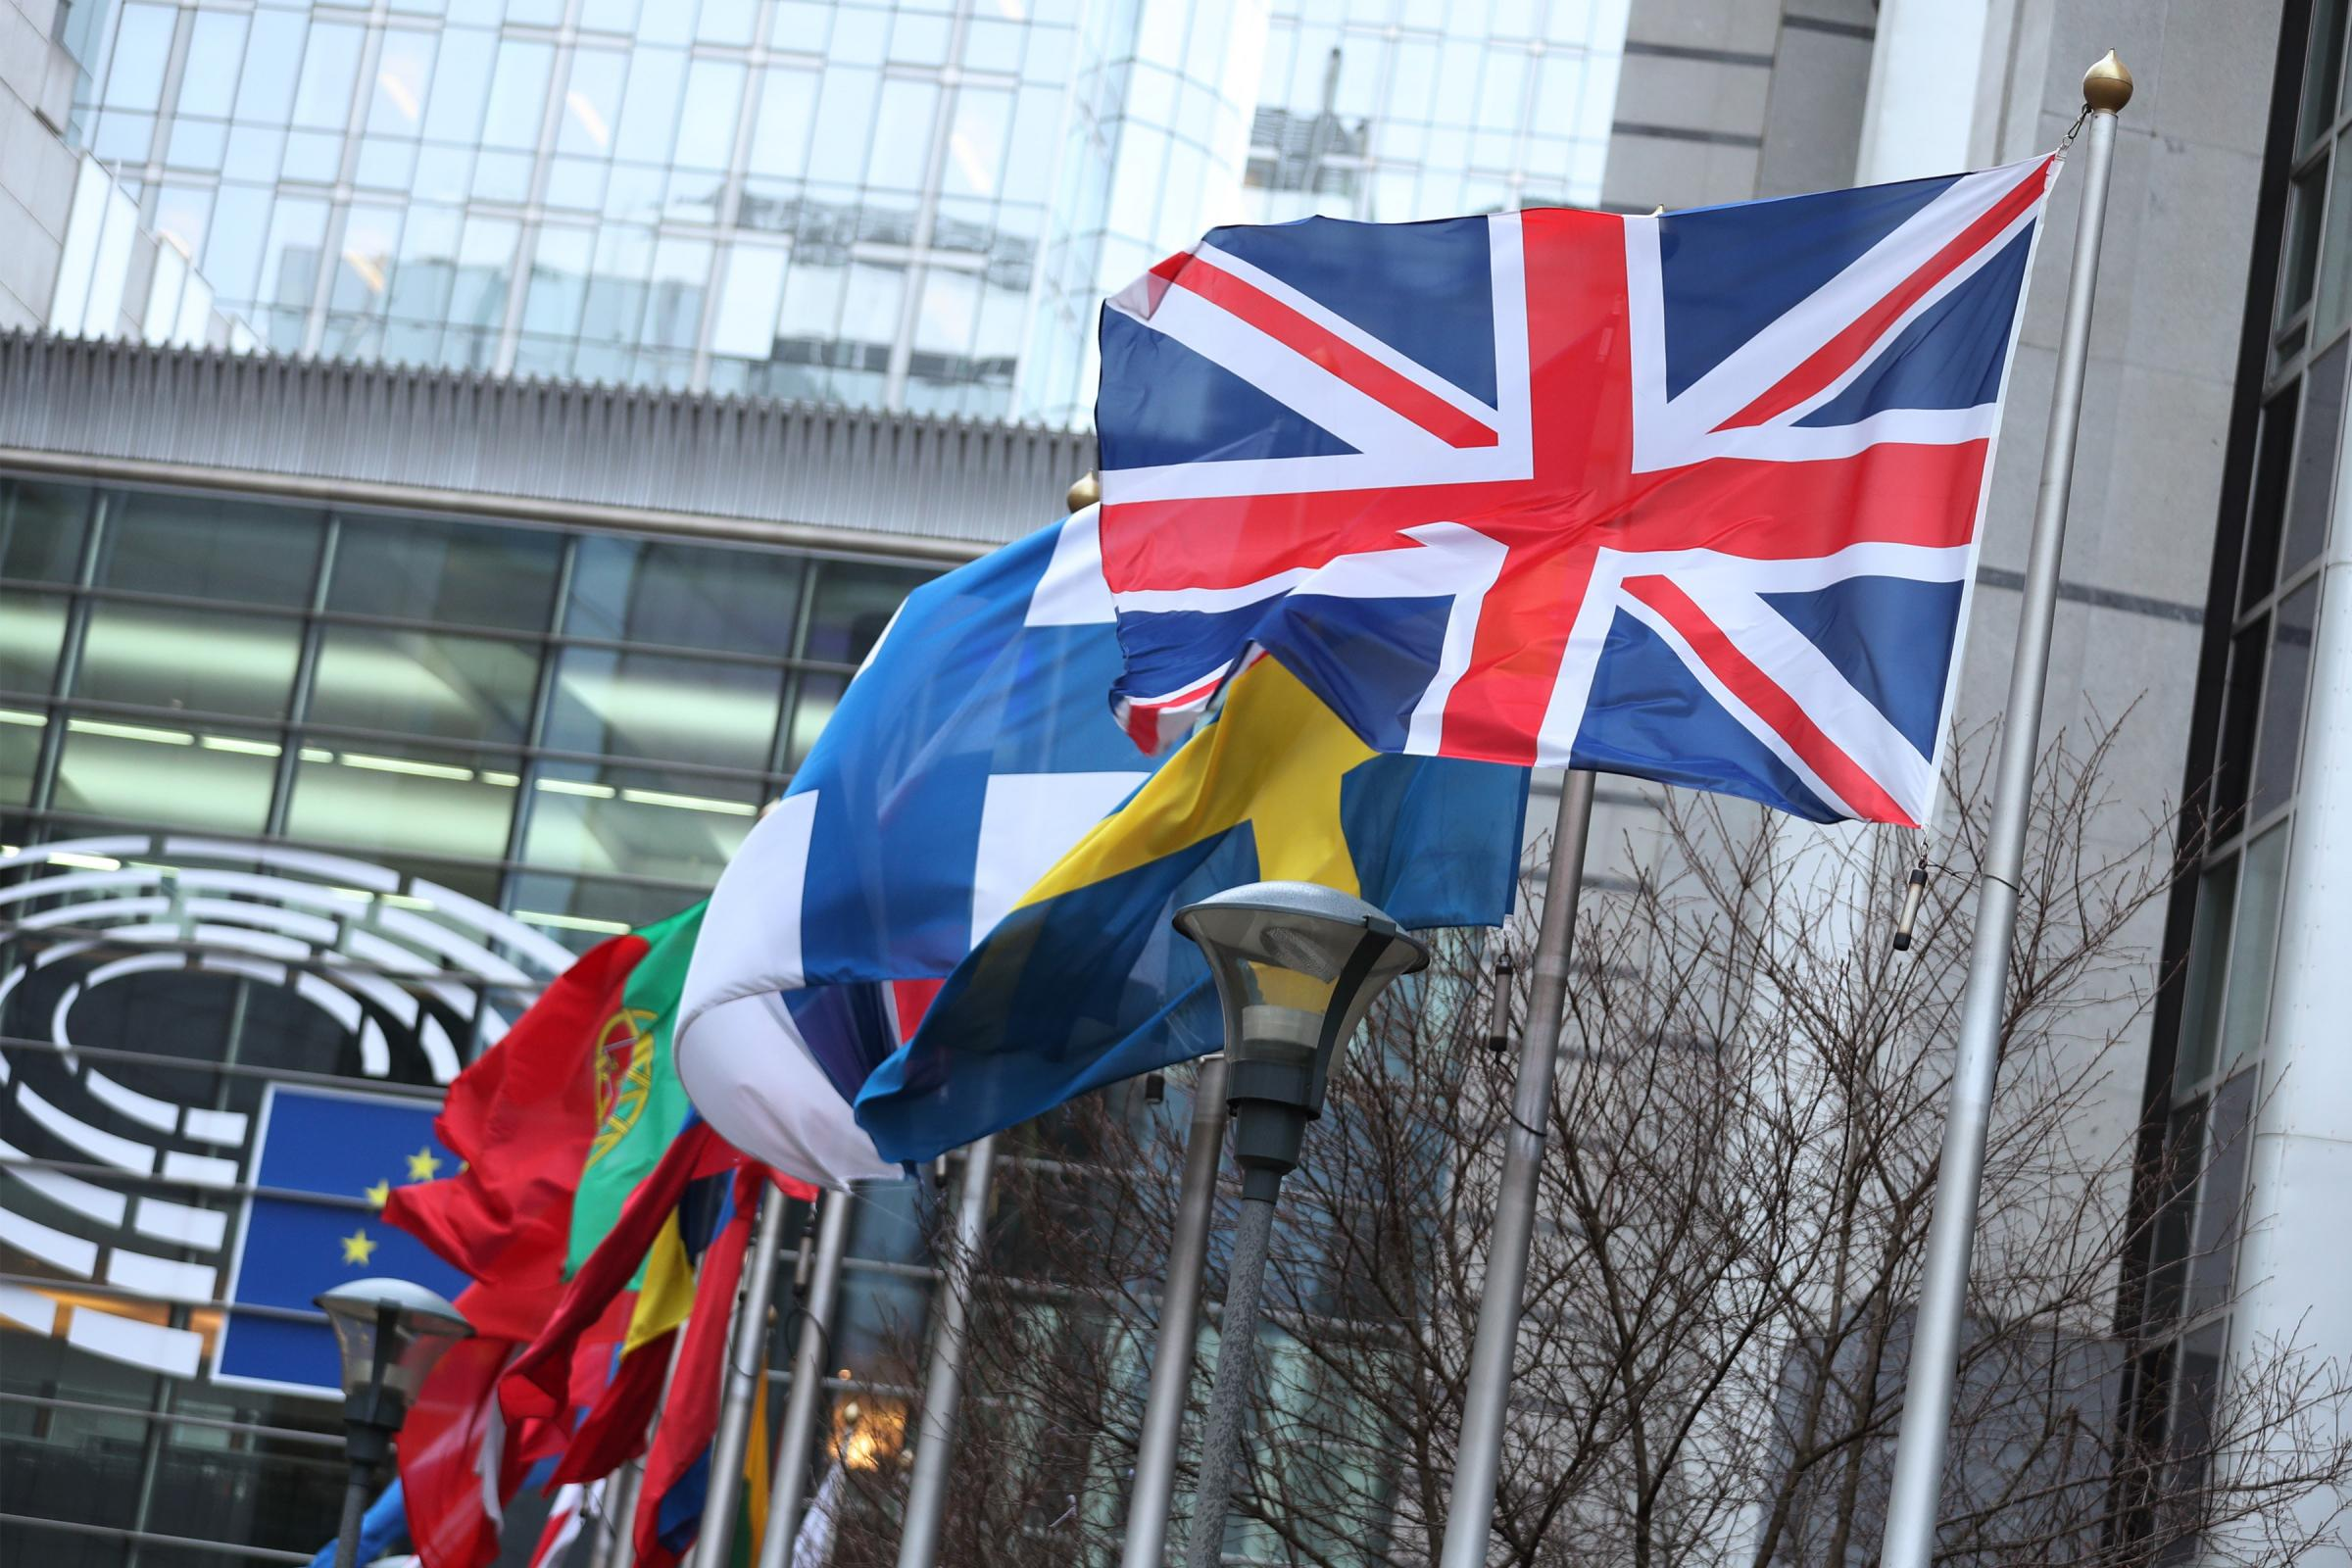 It's Brexit Day, but what will change?